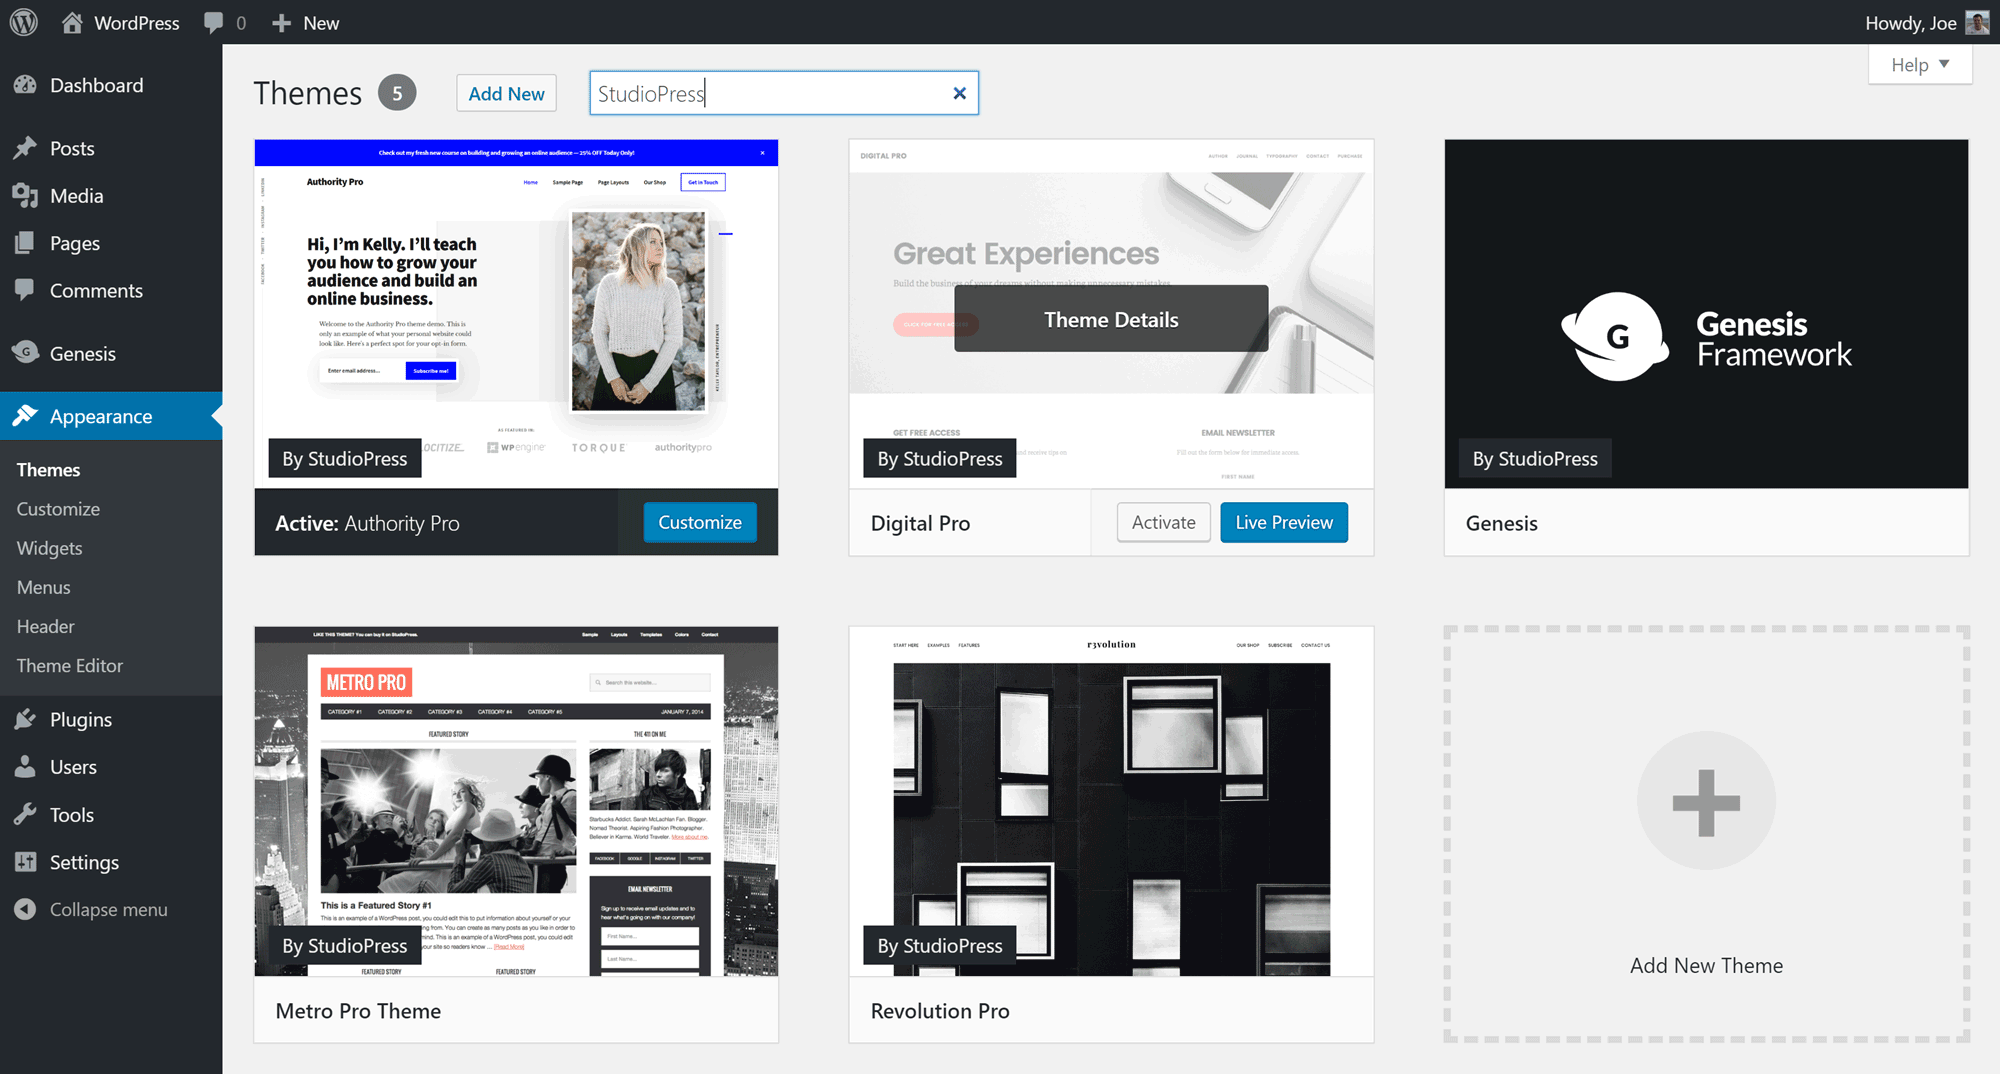 StudioPress Themes in WordPress Dashboard